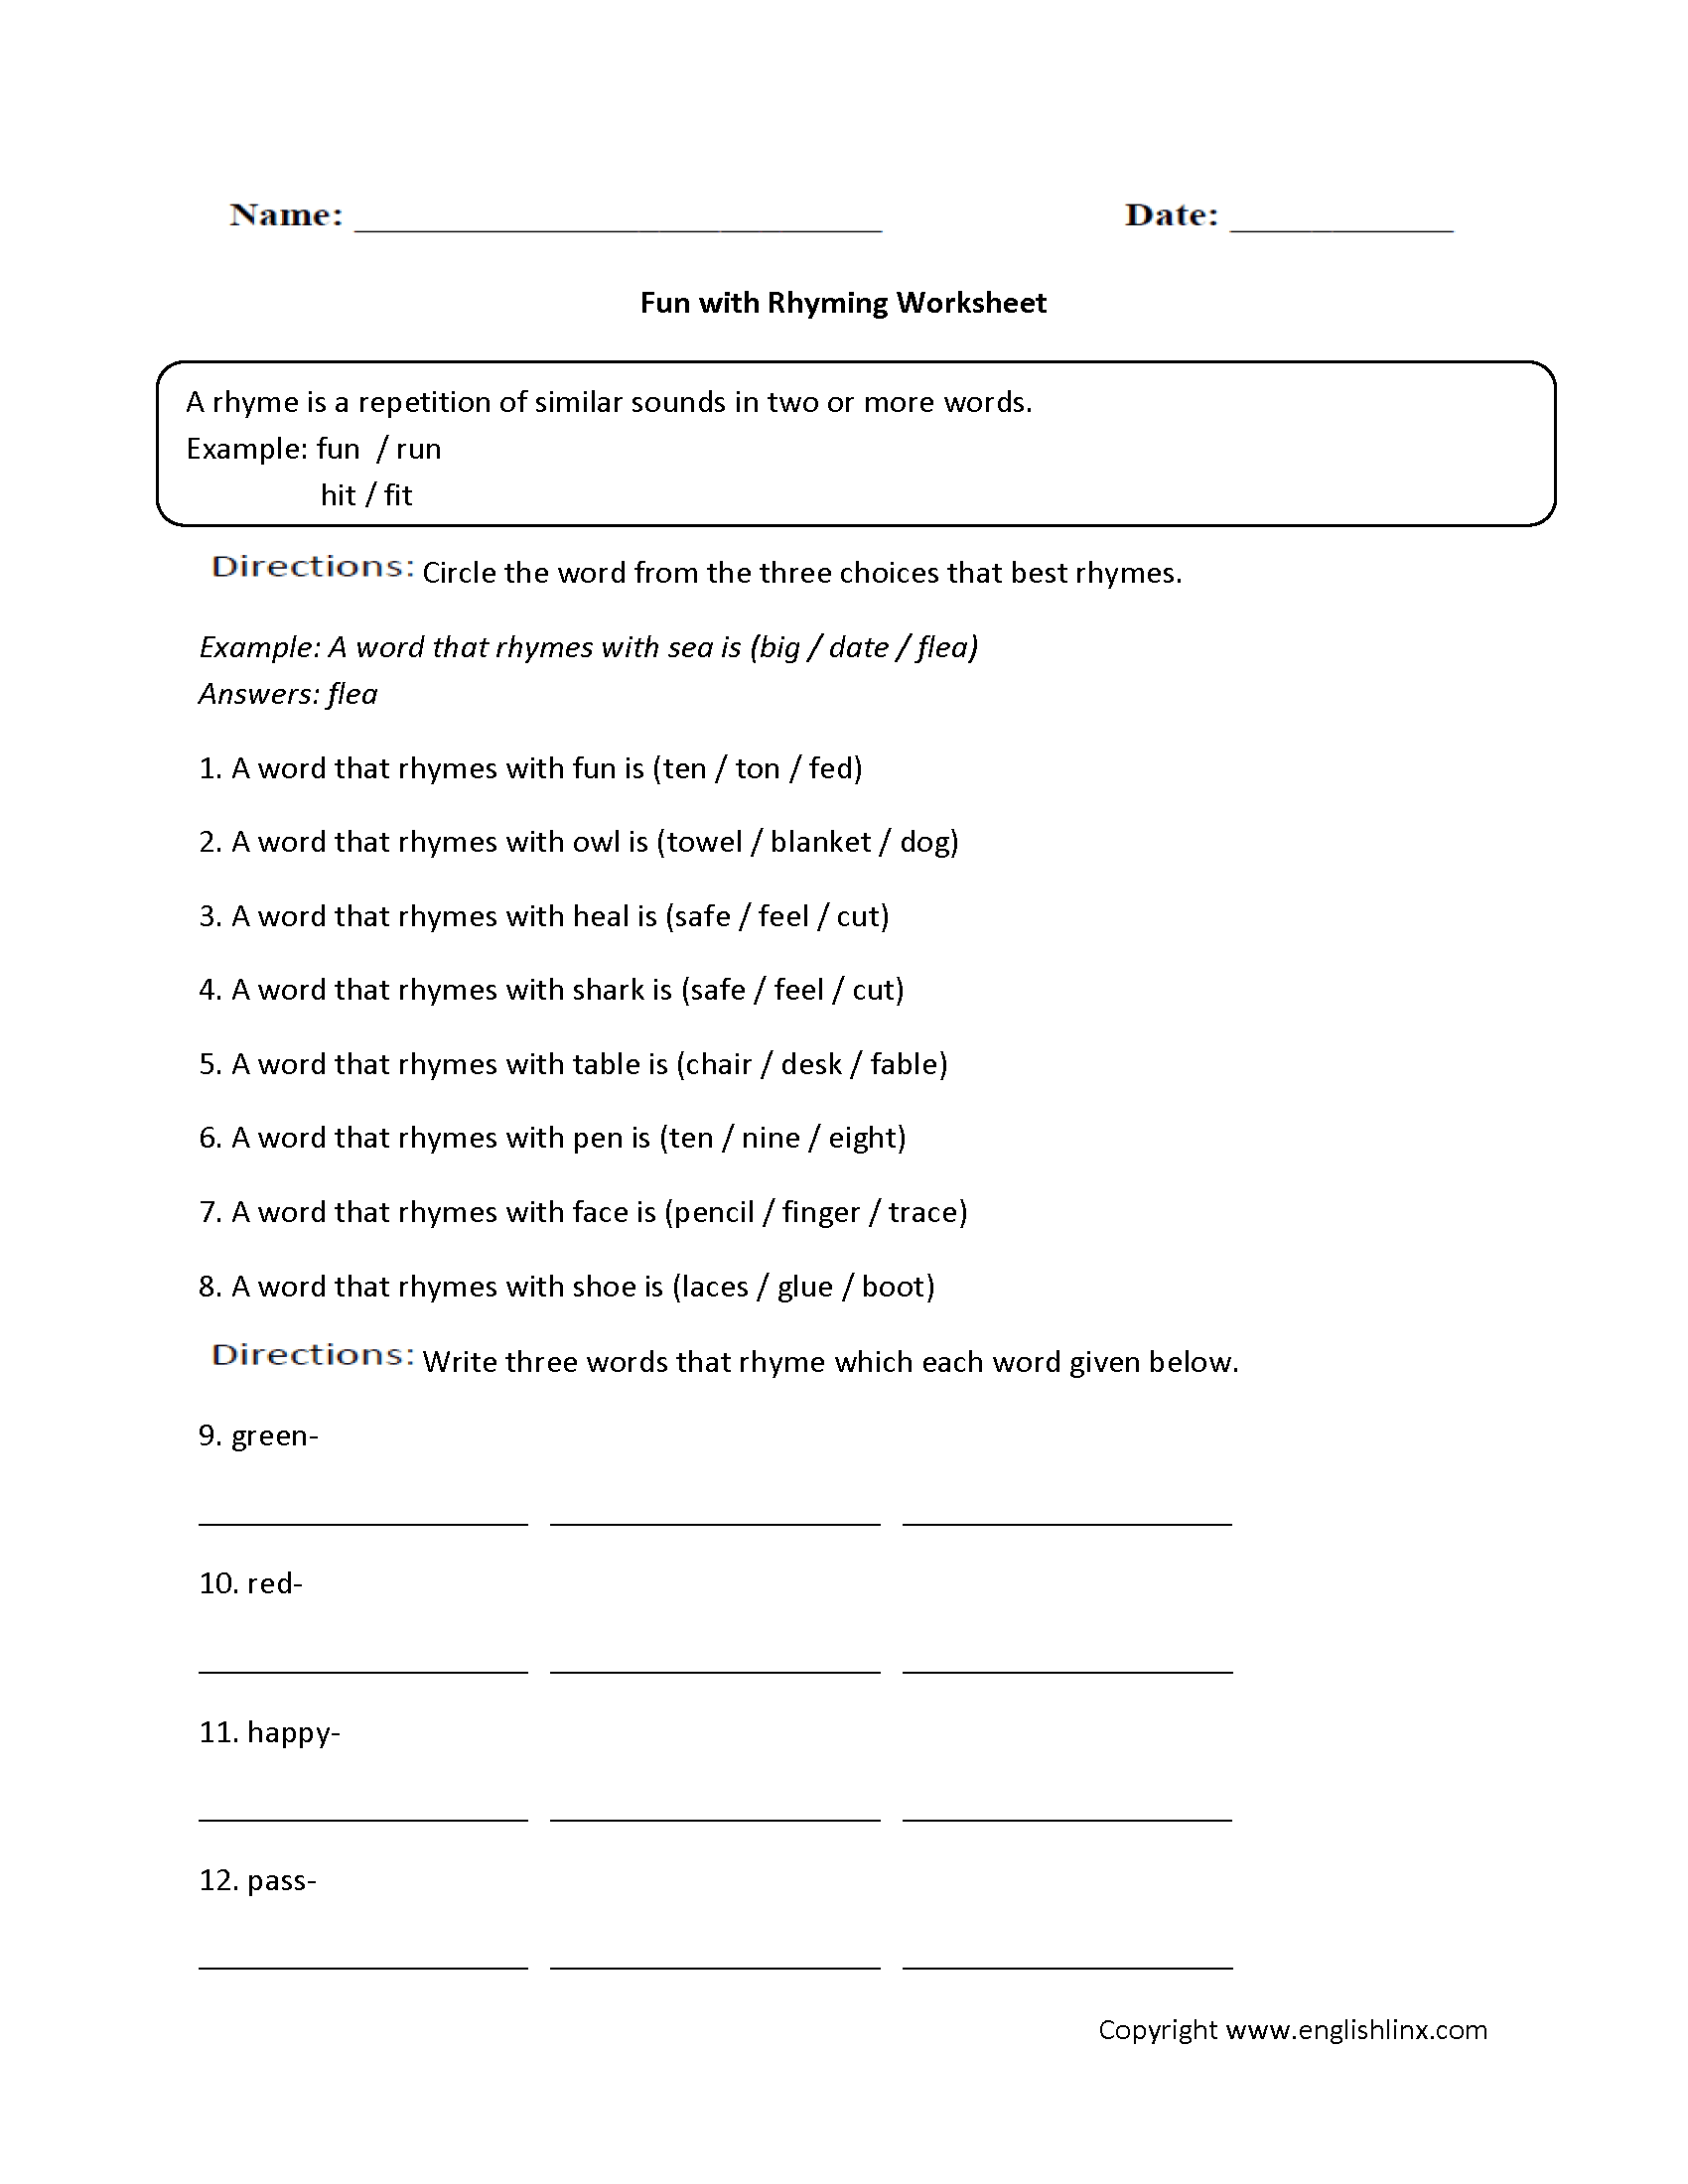 worksheet Worksheet Rhyming Words englishlinx com rhyming worksheets grades 9 12 worksheets